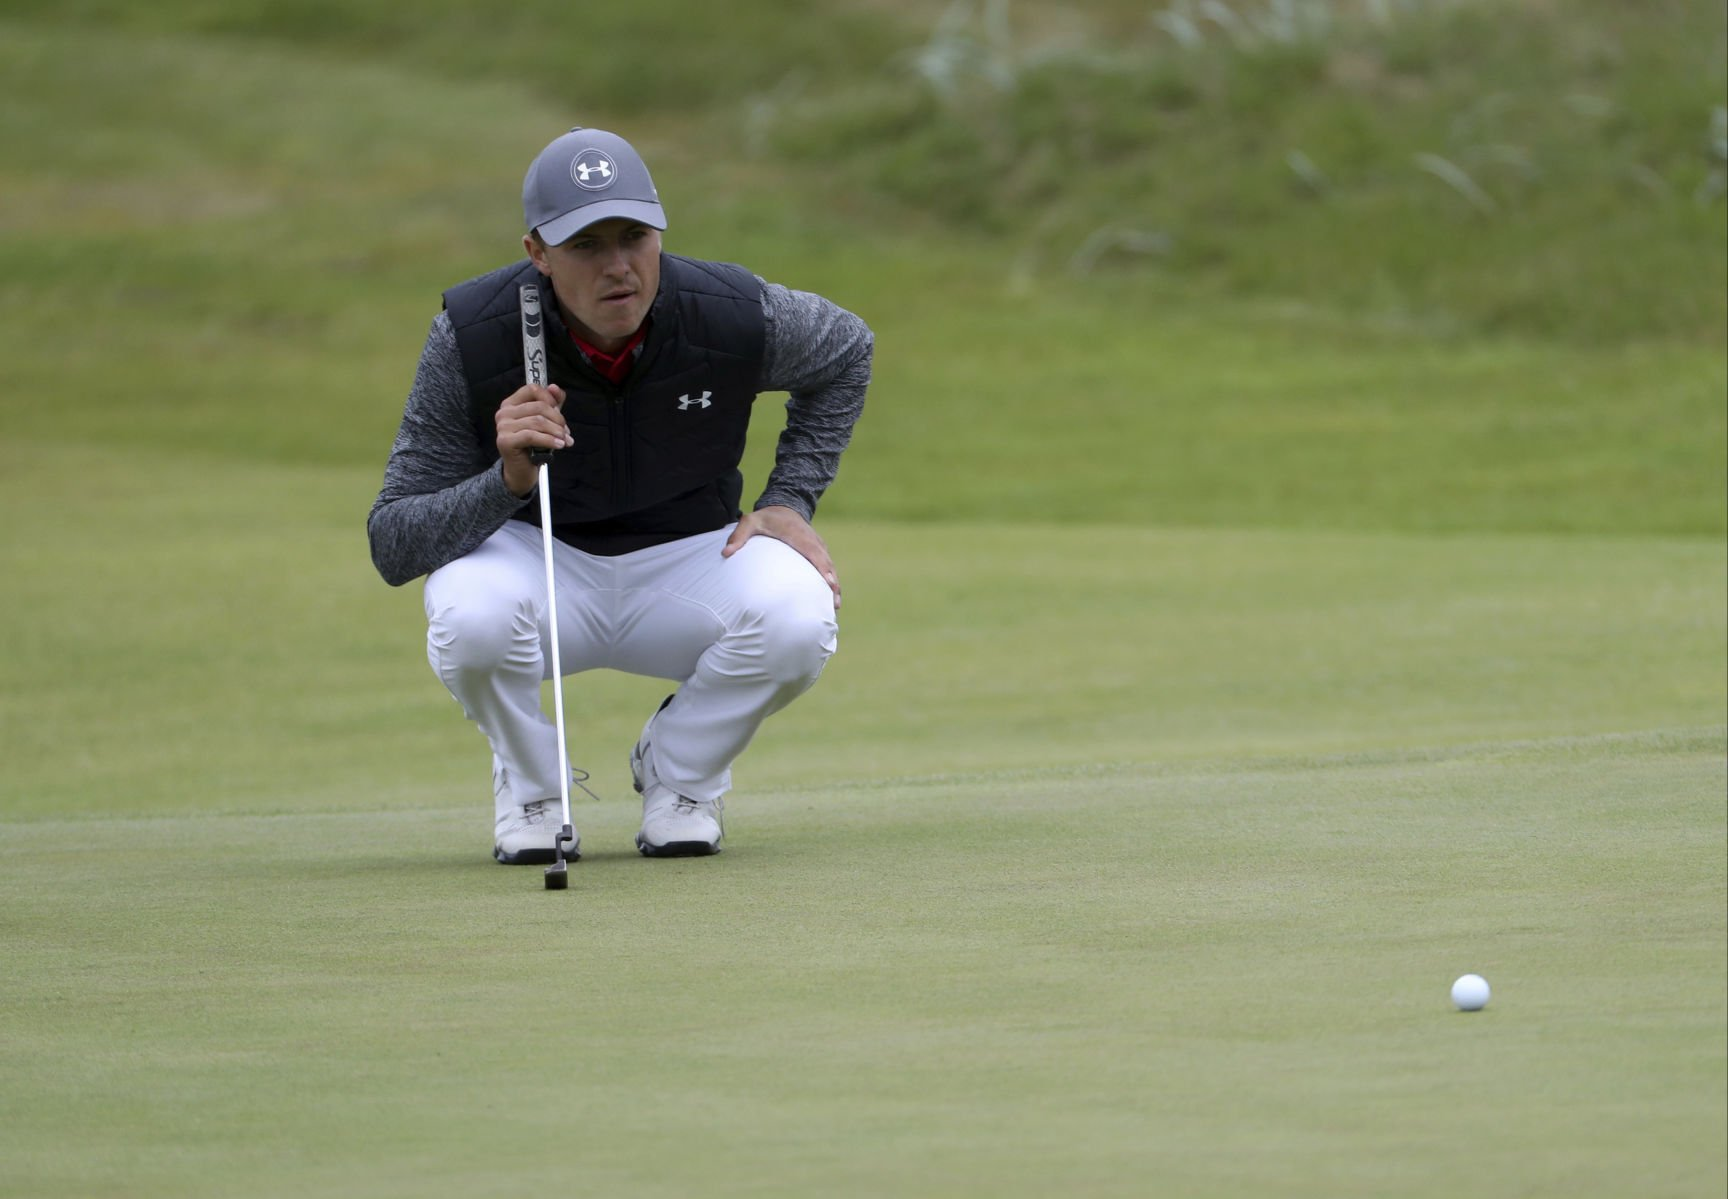 British Open: Pep talk from caddie inspires McIlroy